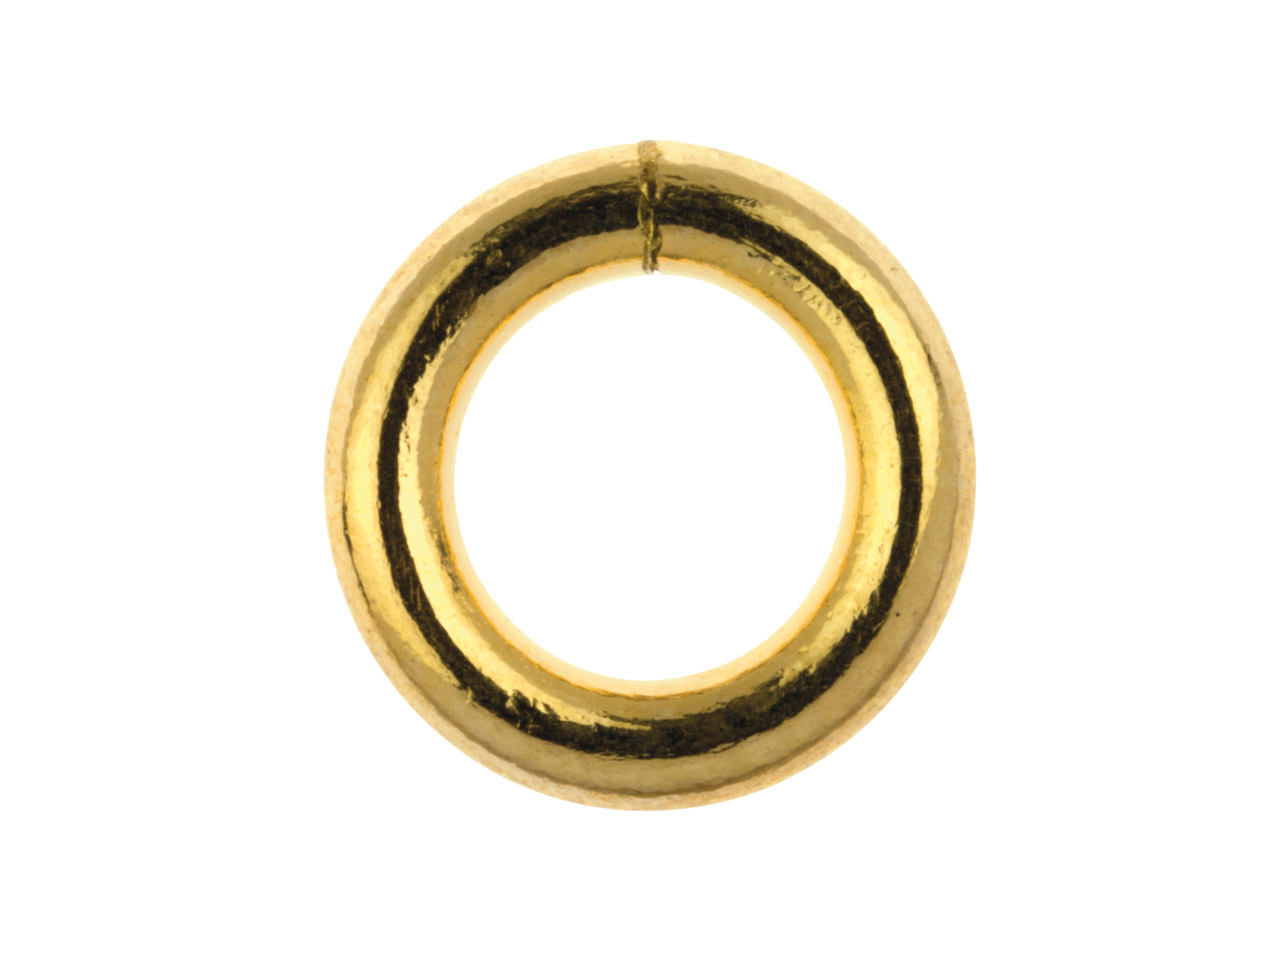 14ct Gold Filled Closed Jump Ring  5mm Pack of 5